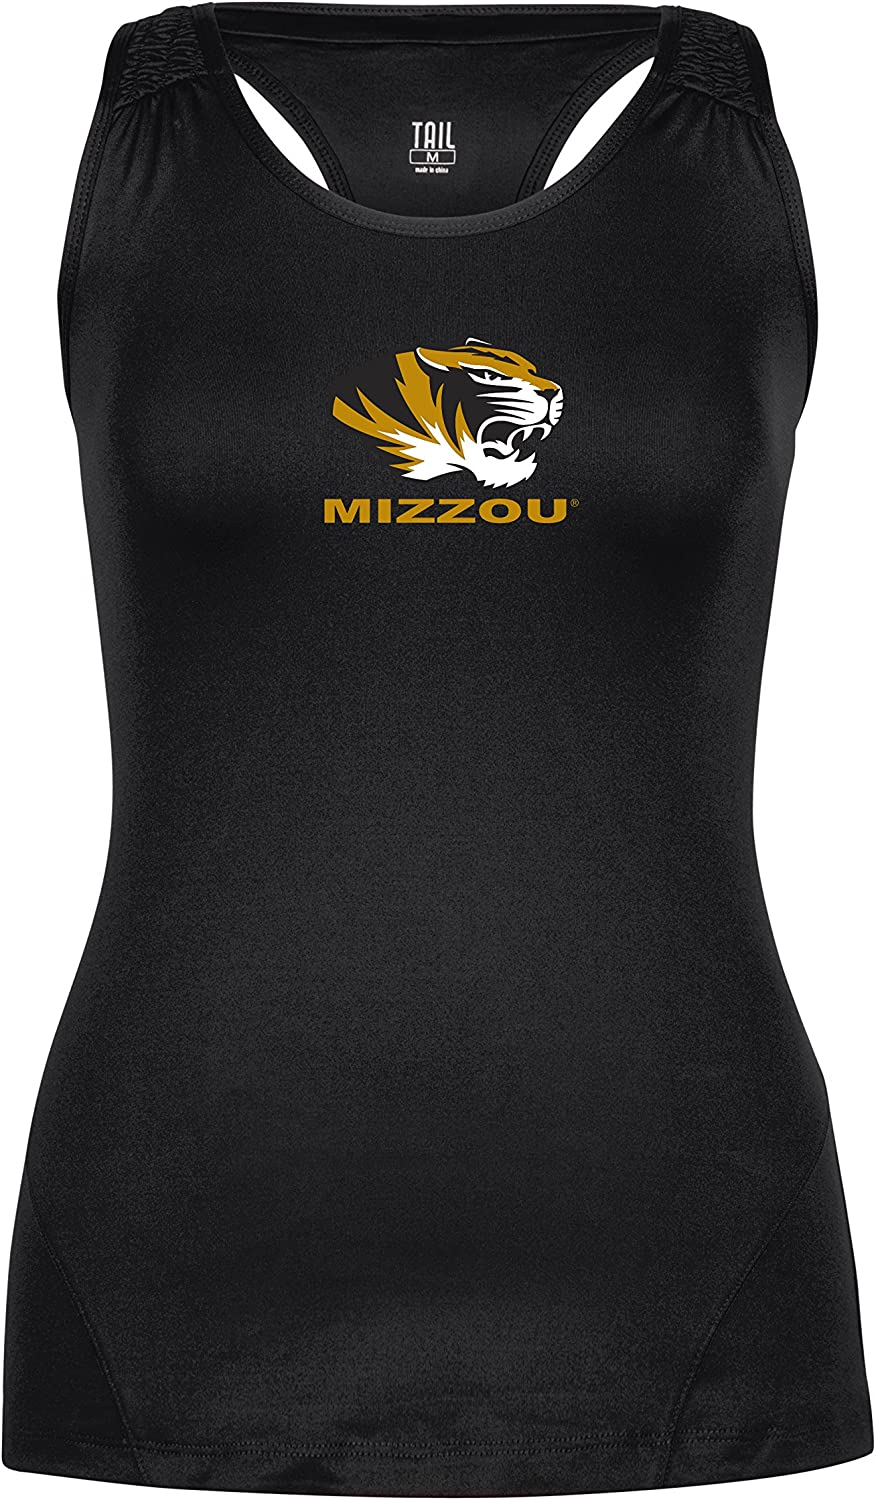 Licensed NCAA Womens Play Hard Racerback Fitted Tank Top Tail ActiveWear